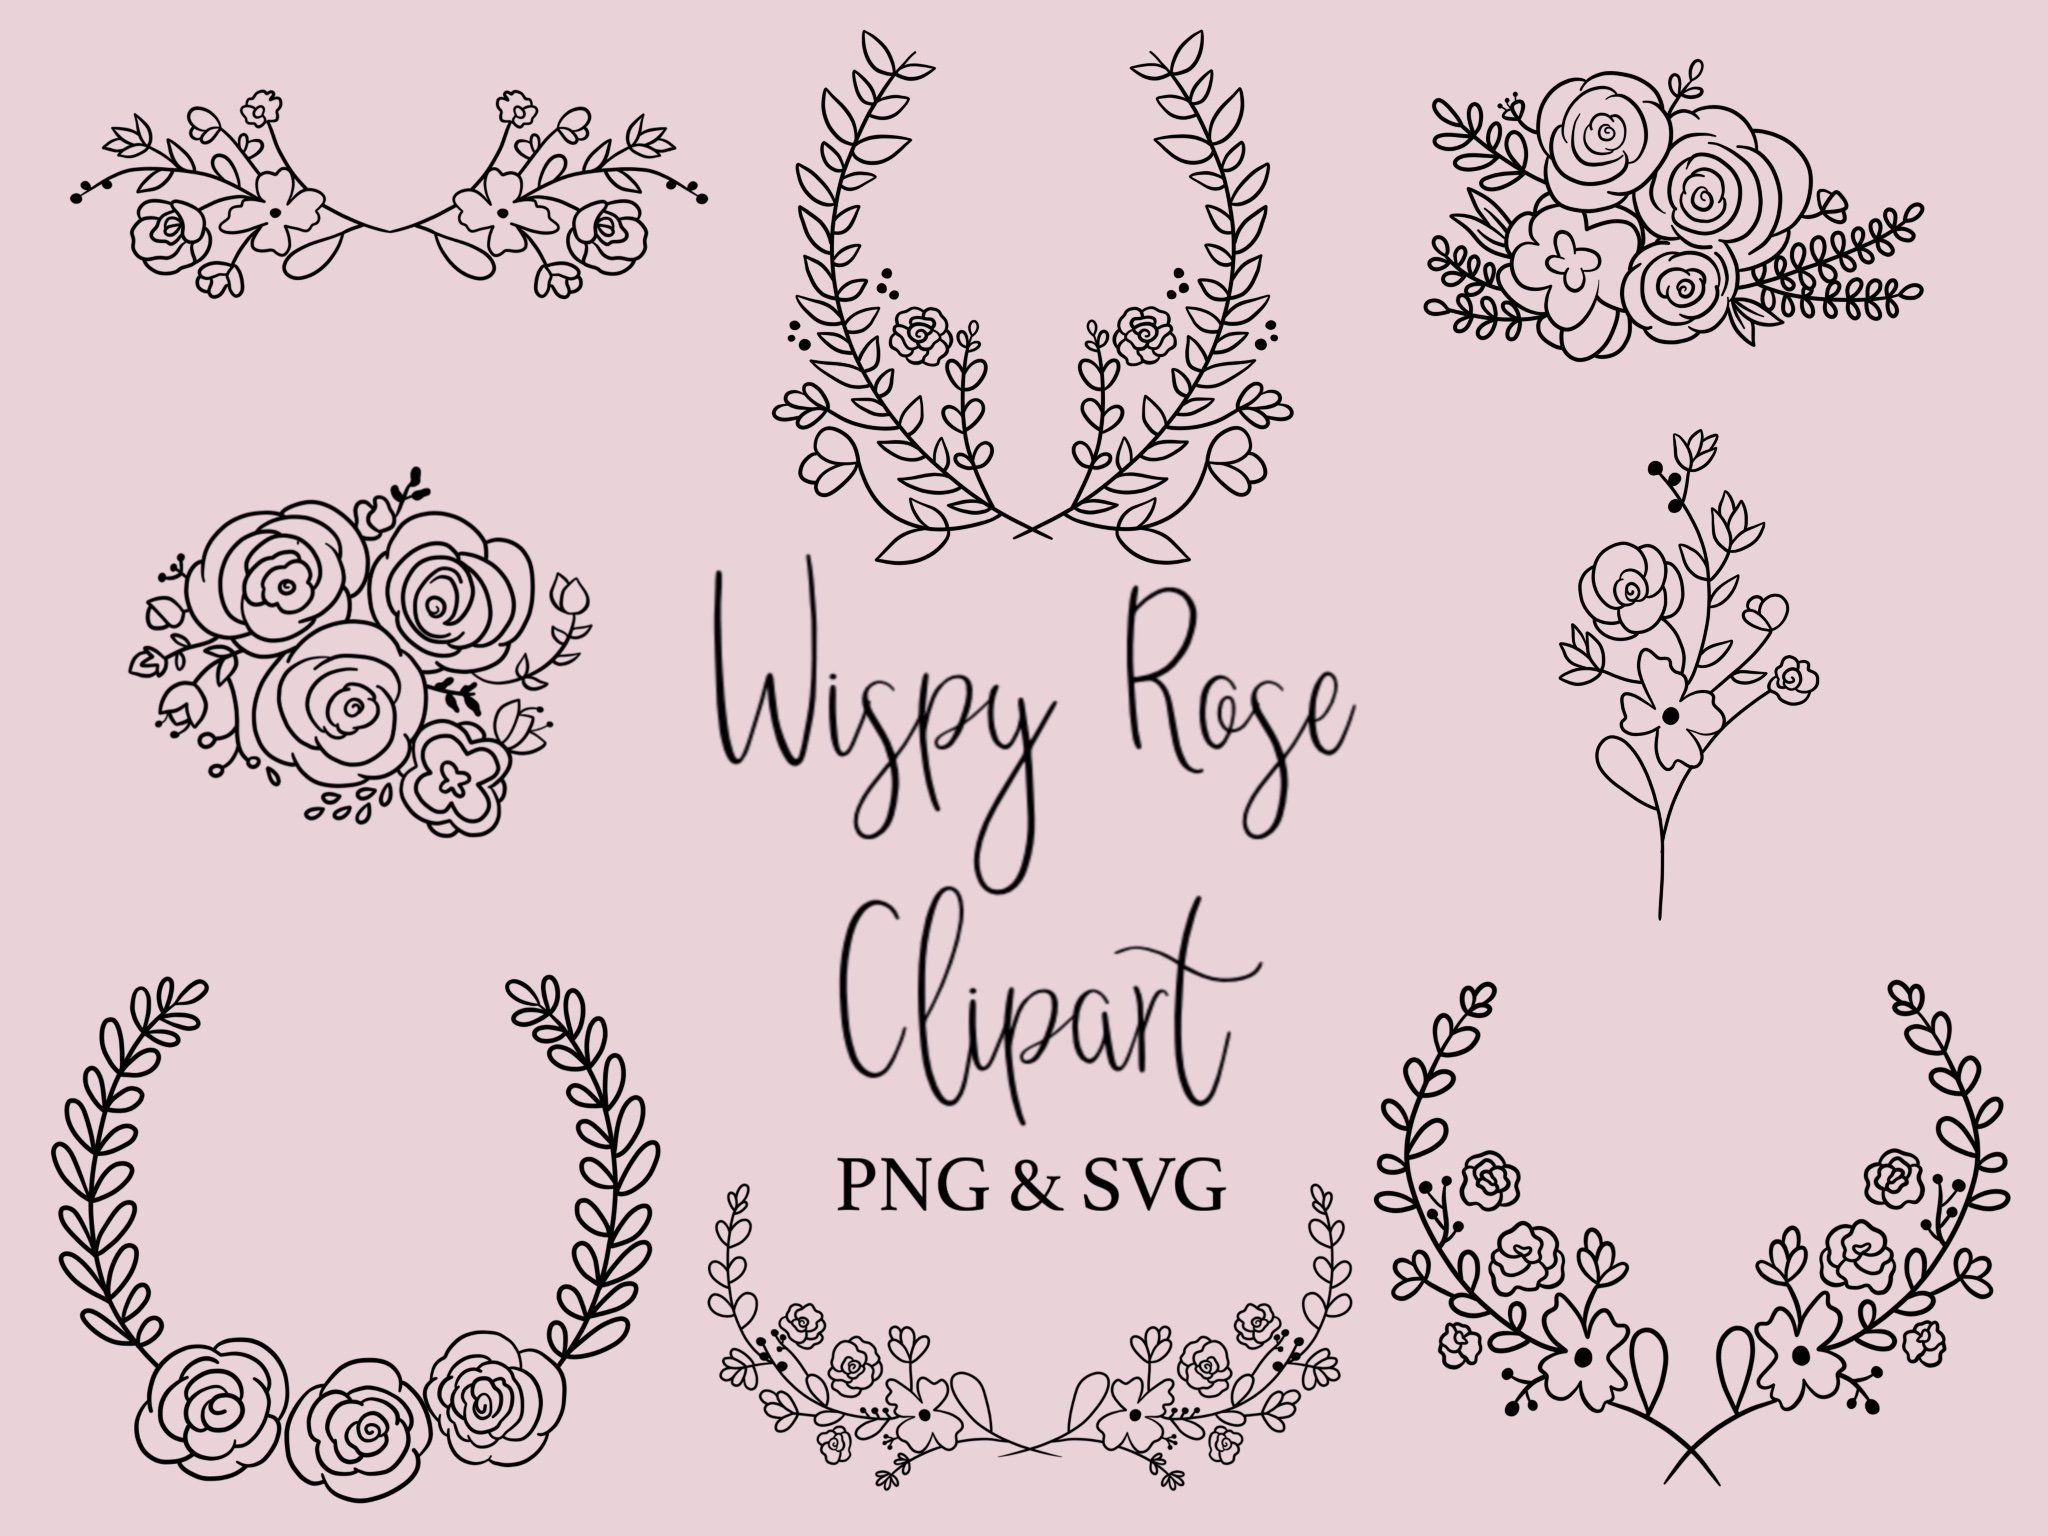 Clipart roses doodle. Wispy rose hand drawn